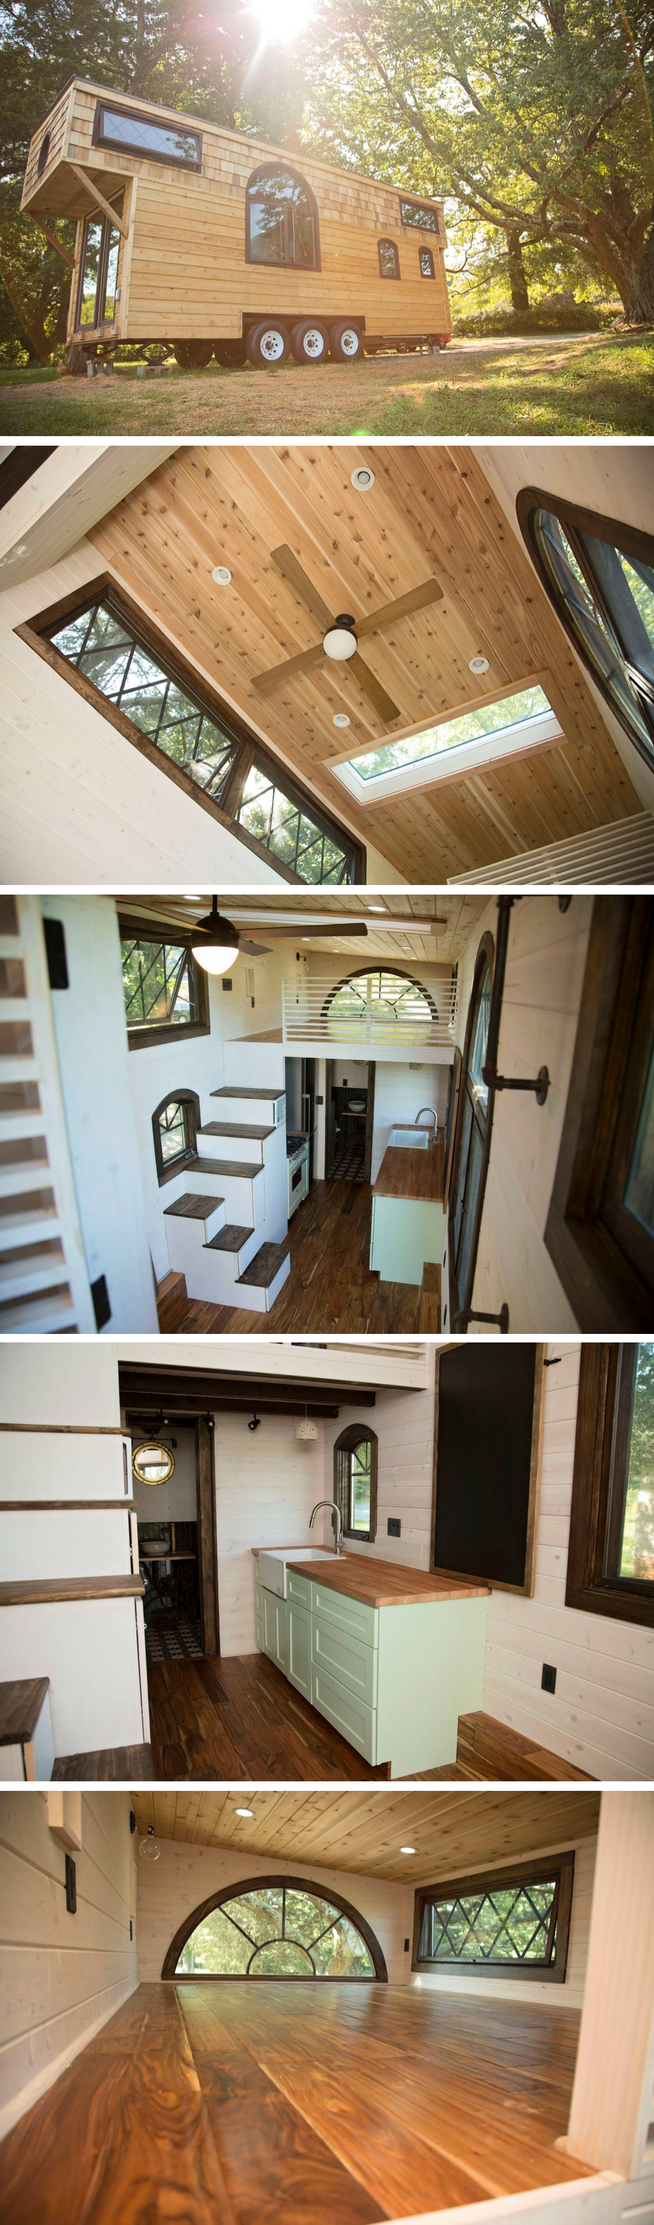 Wonderful The Old World Vermont: A 300 Sq Ft Tiny House On Wheels From Perch And